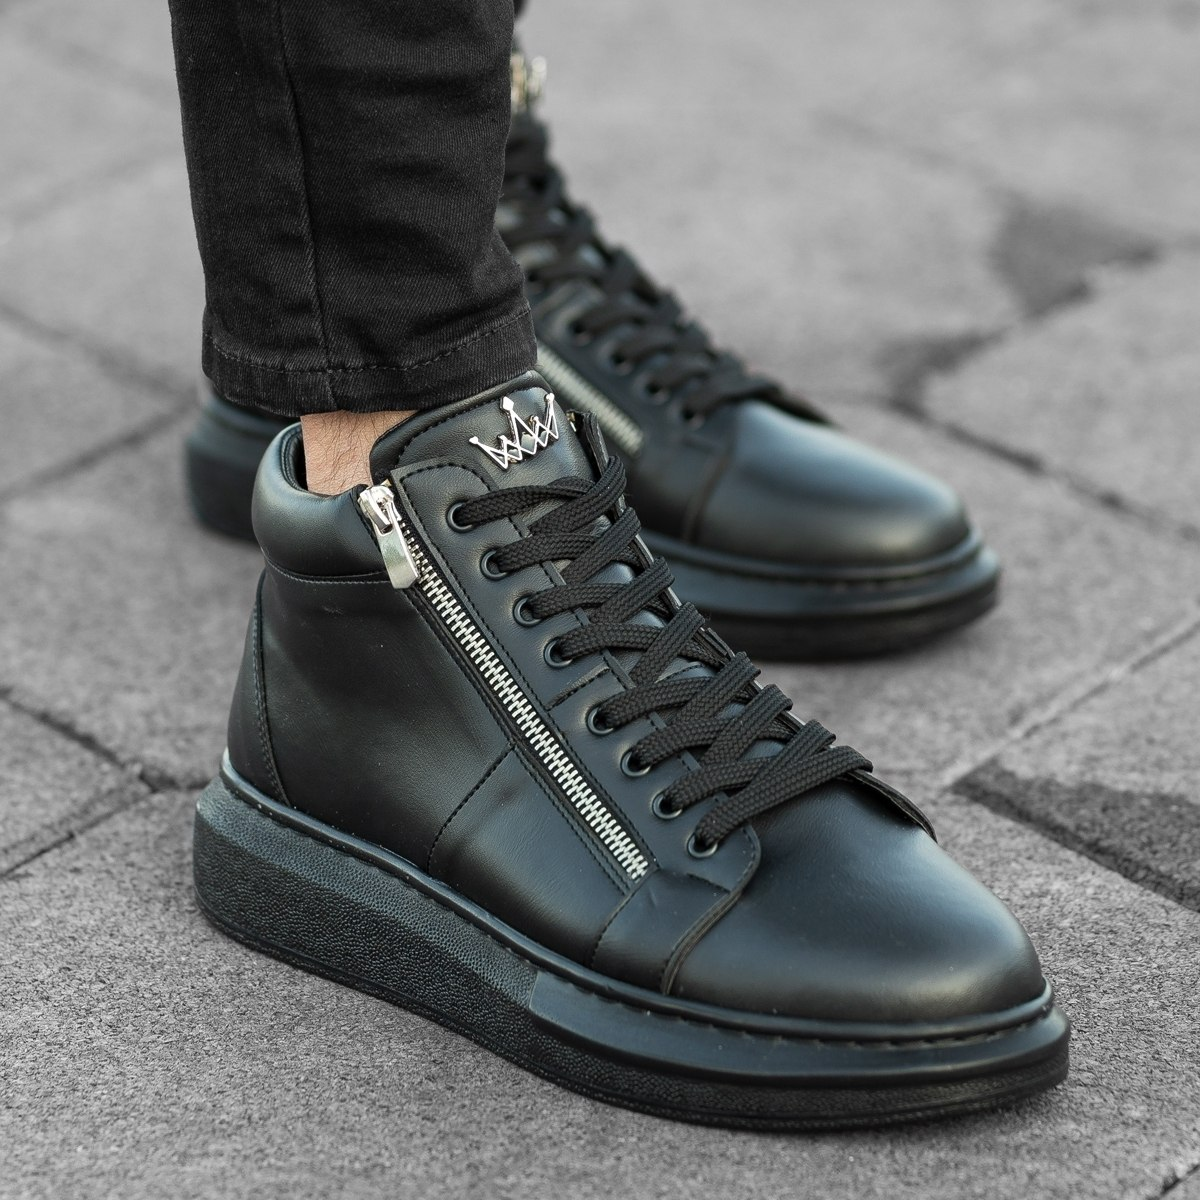 Hype Sole Zipped Style High Top Sneakers in Full Black